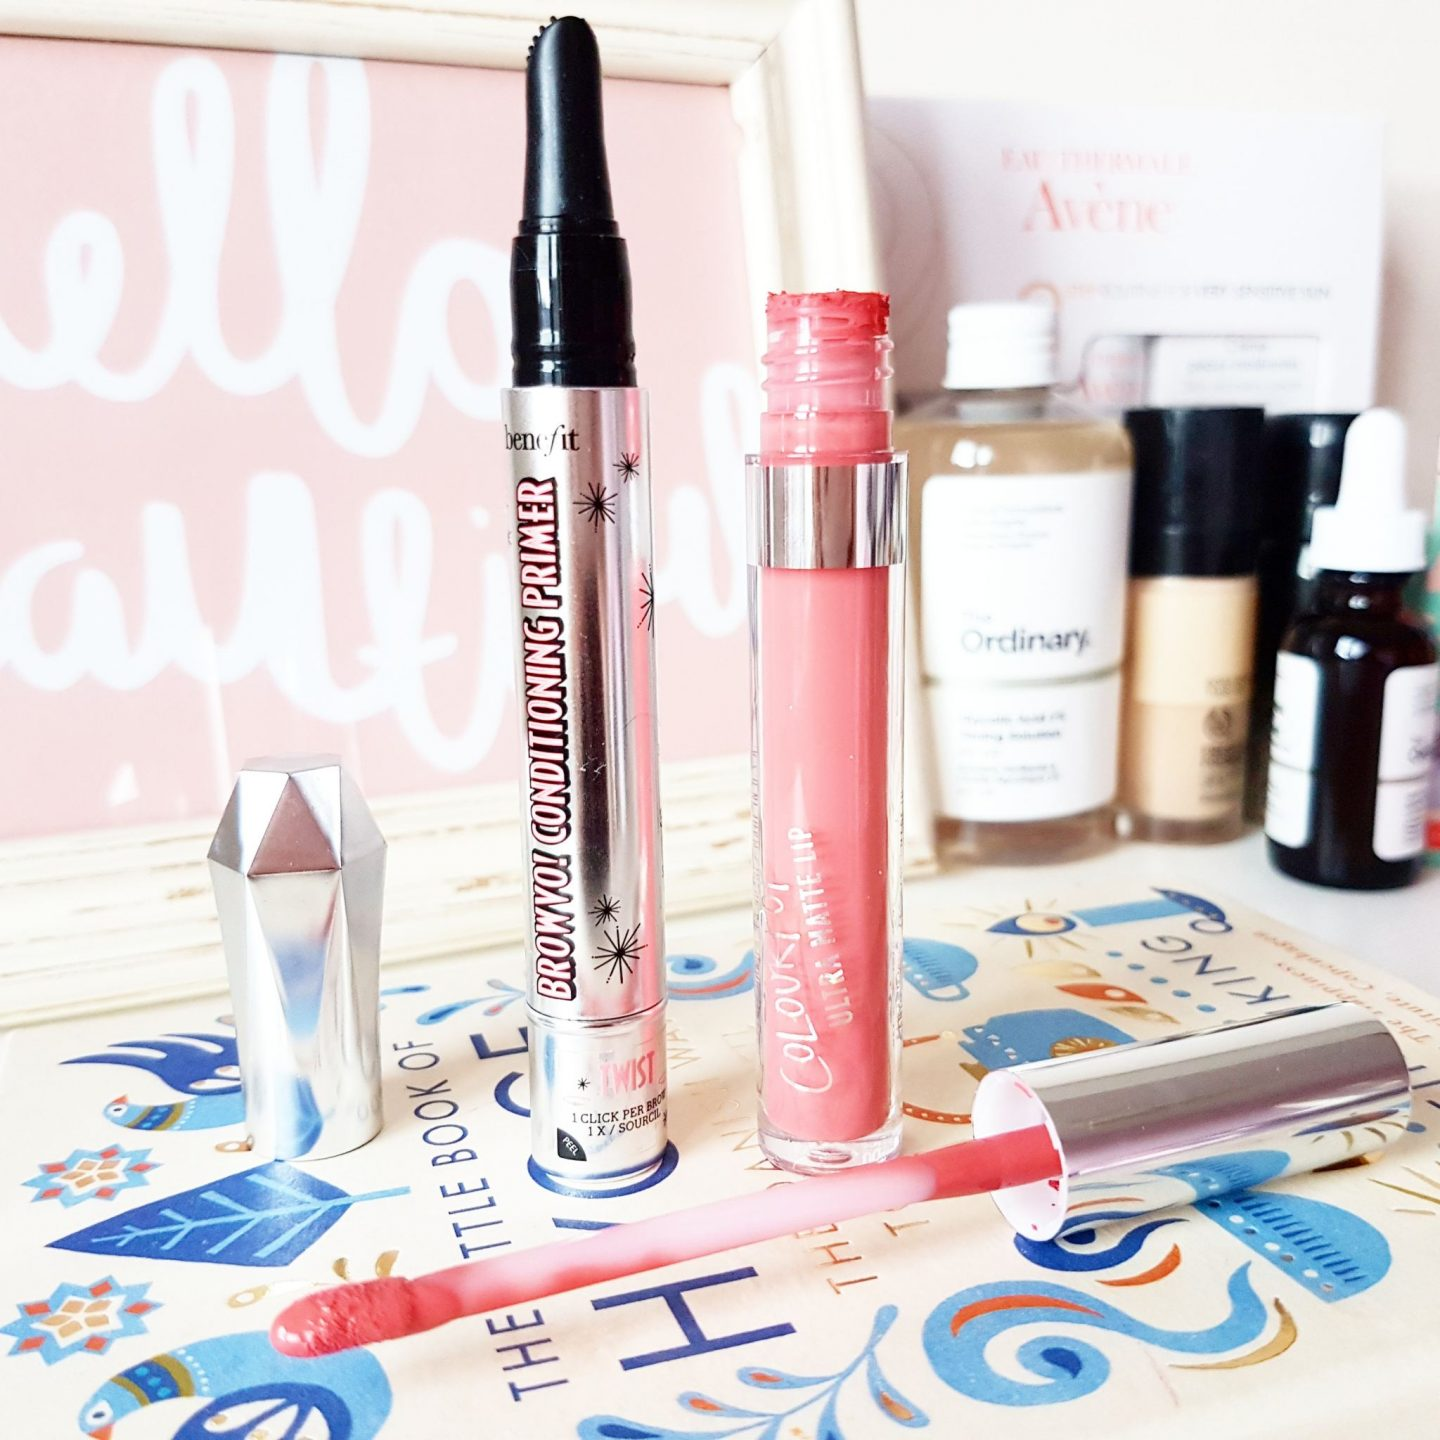 Beauty Products I Regret Buying #1